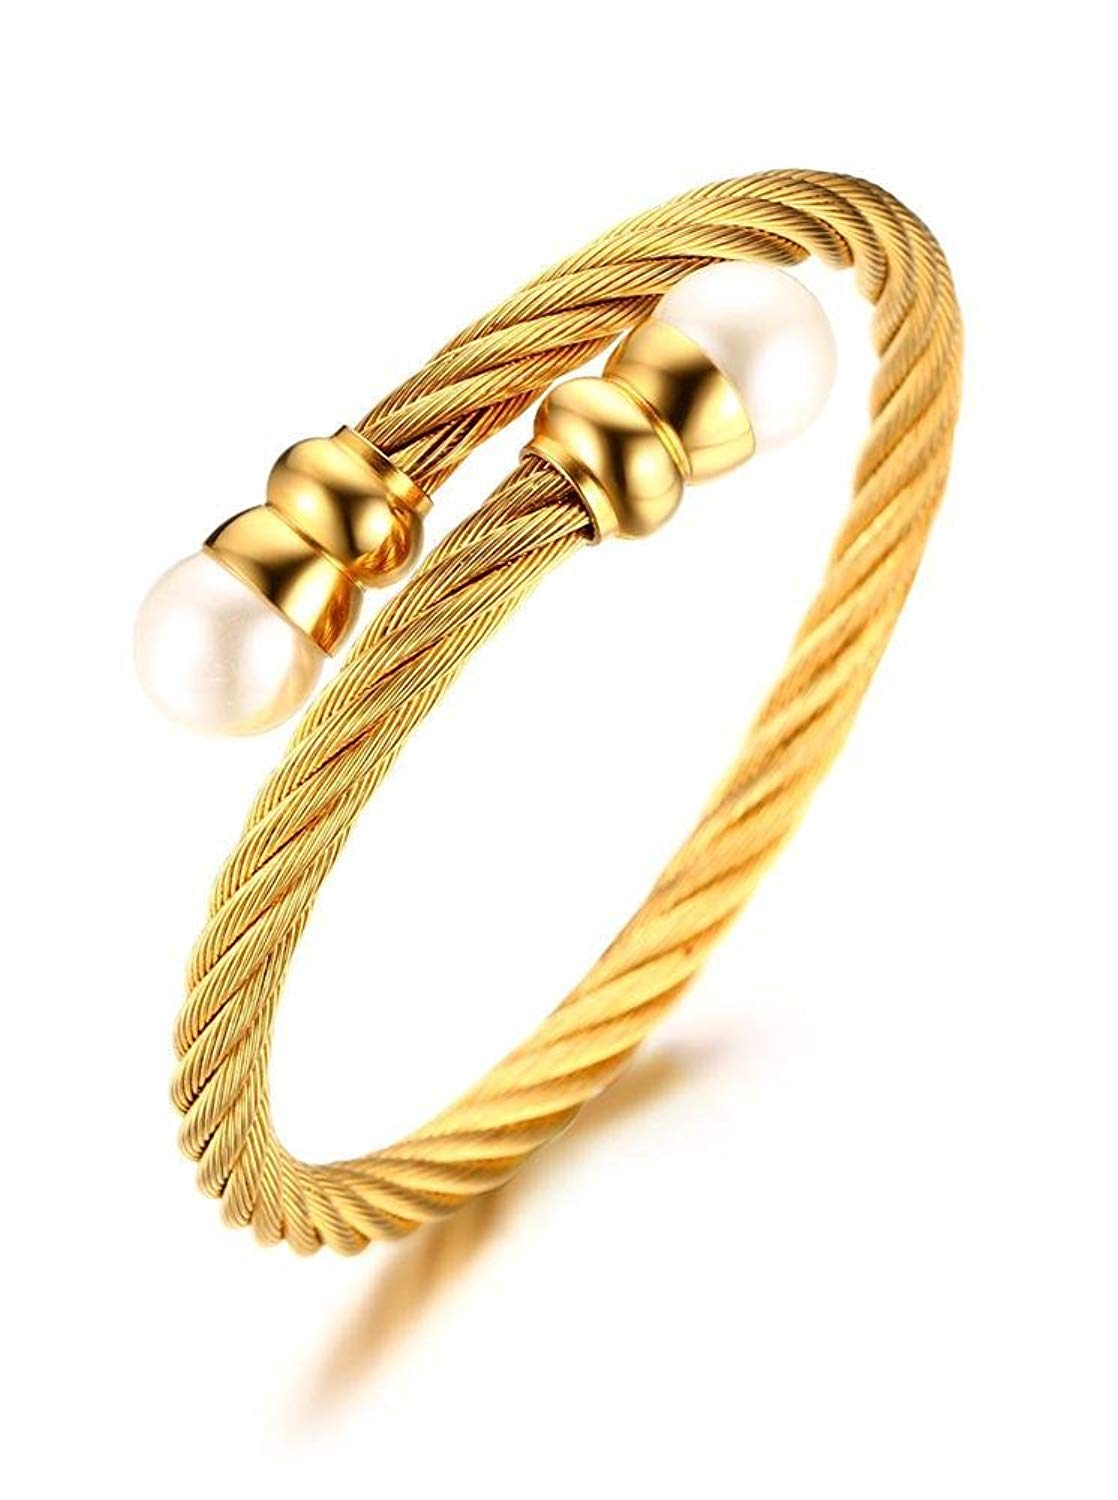 314de72b1c9 Get Quotations · PJ Jewelry Gold Plated Stainless Steel Twisted Elastic Cable  Wire Wrap Bangle Bracelets for Women